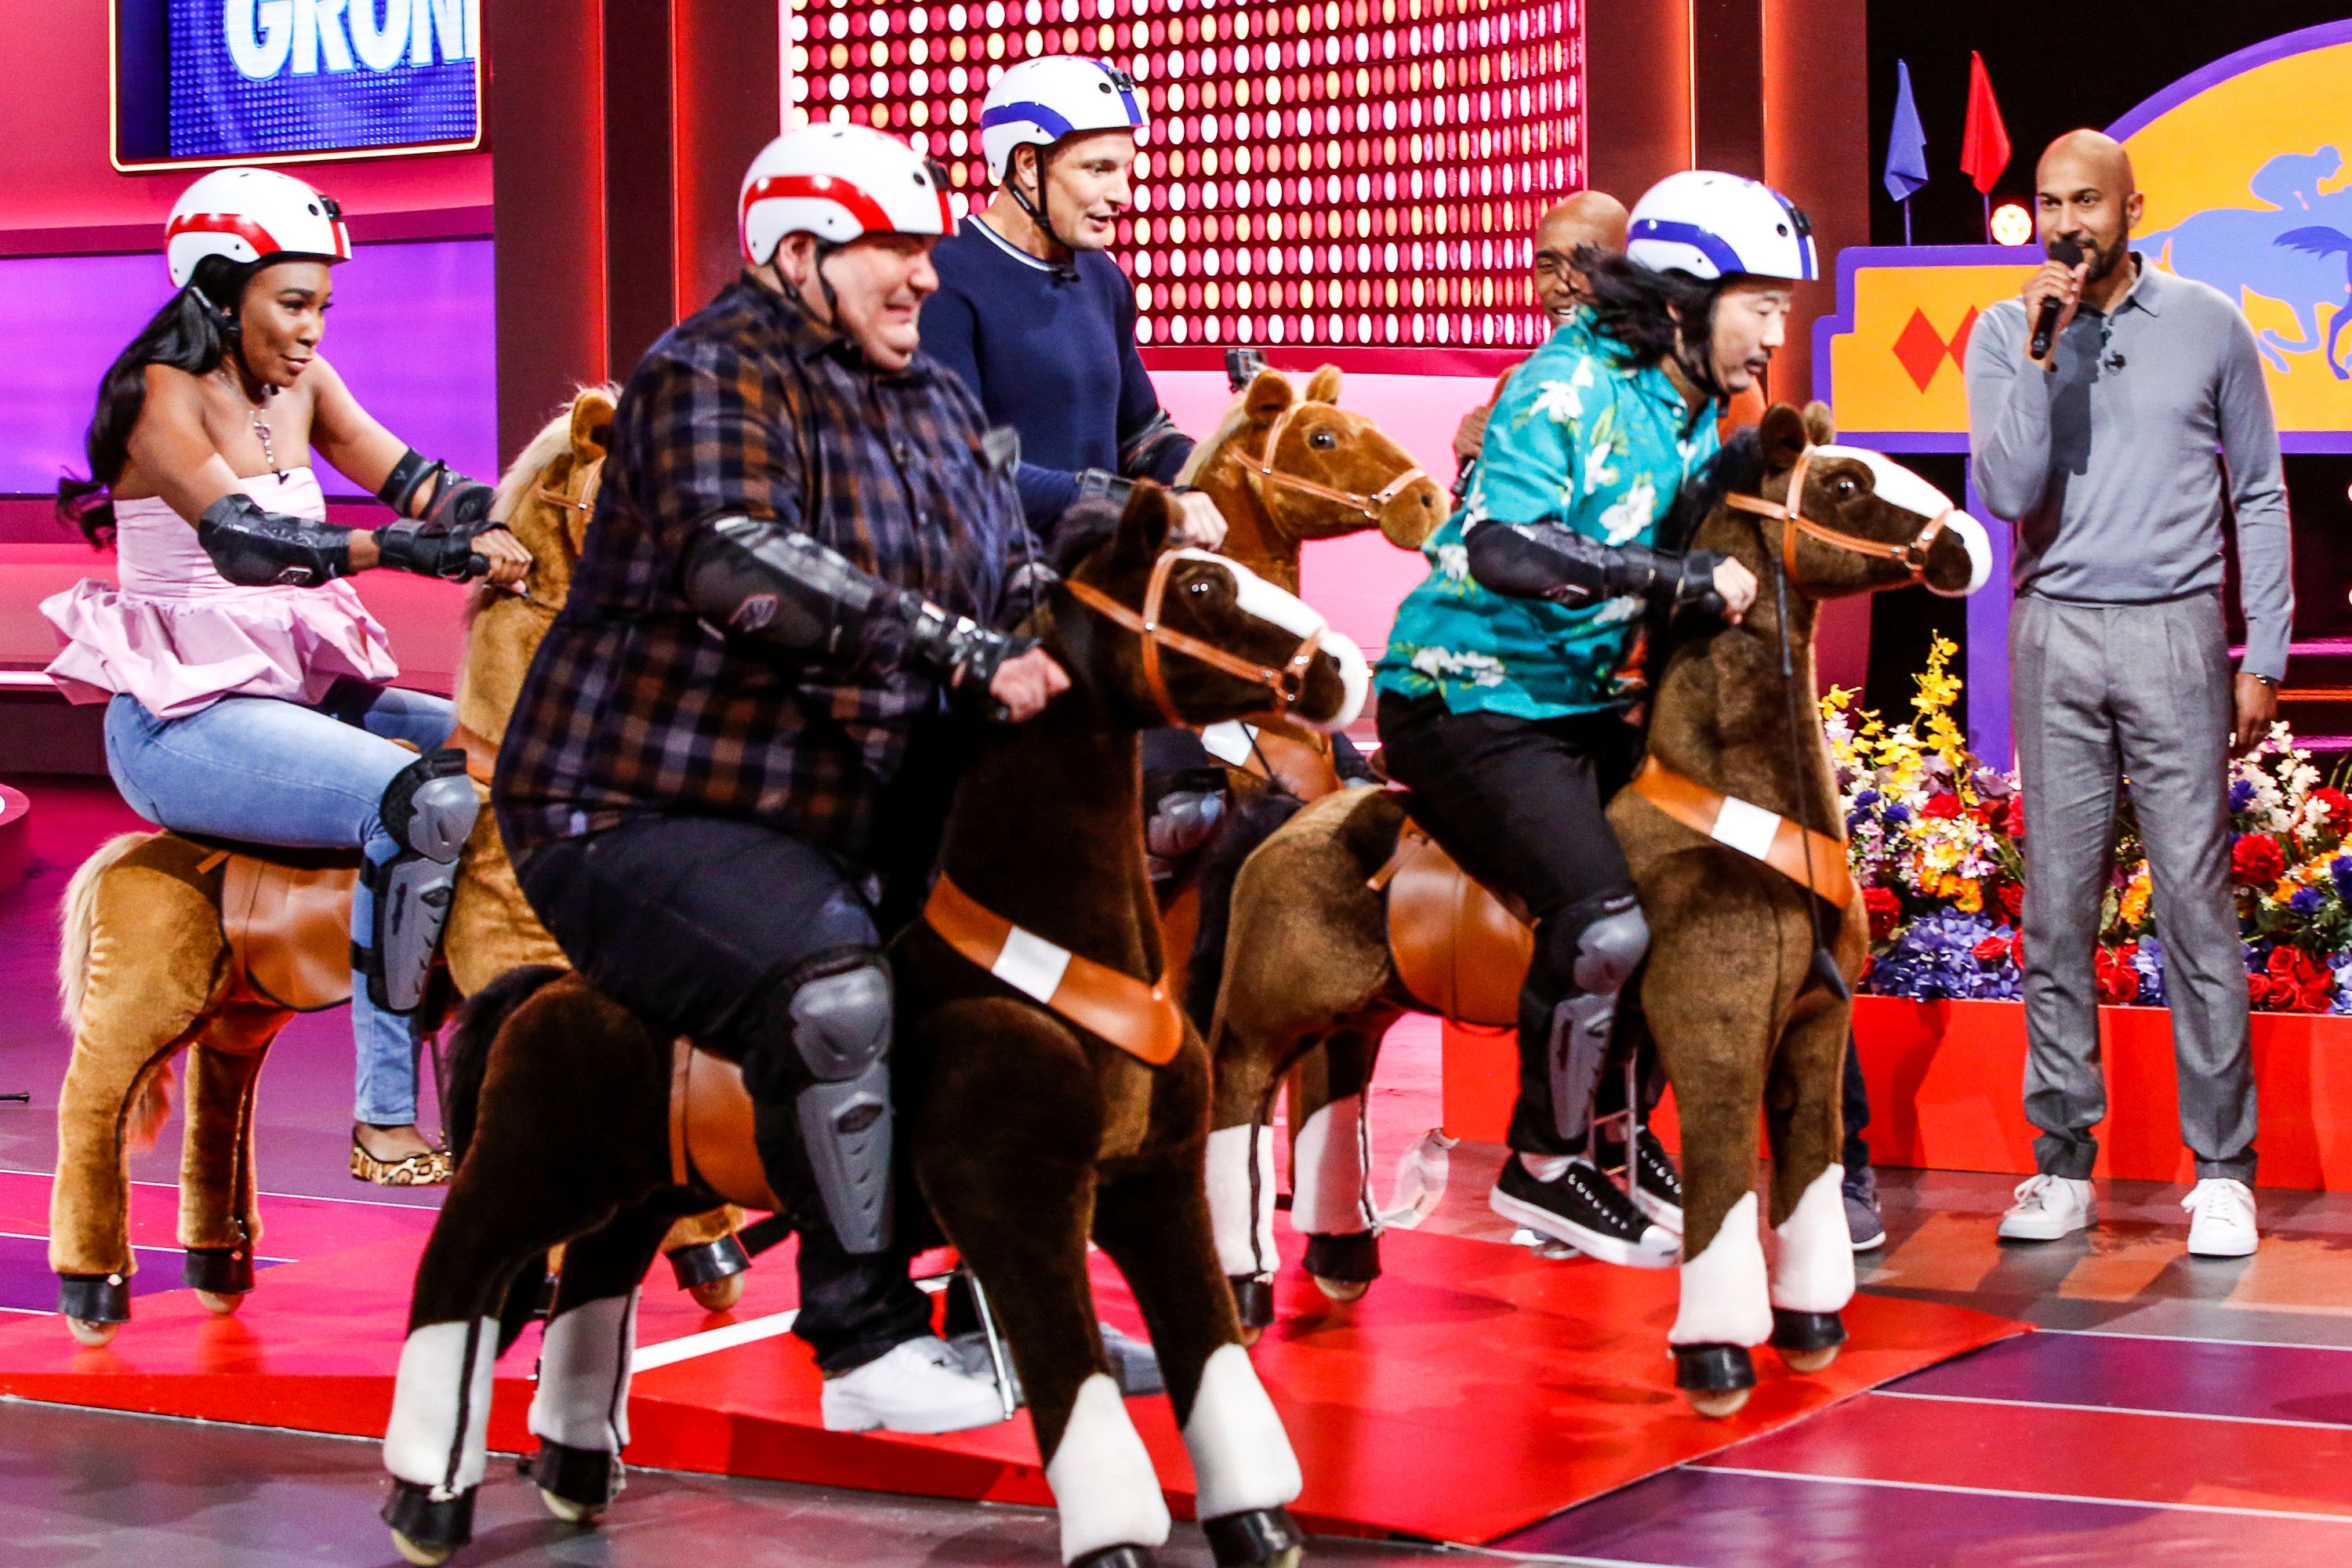 Gronk and the Game On regulars race plush mechanical horses around the set